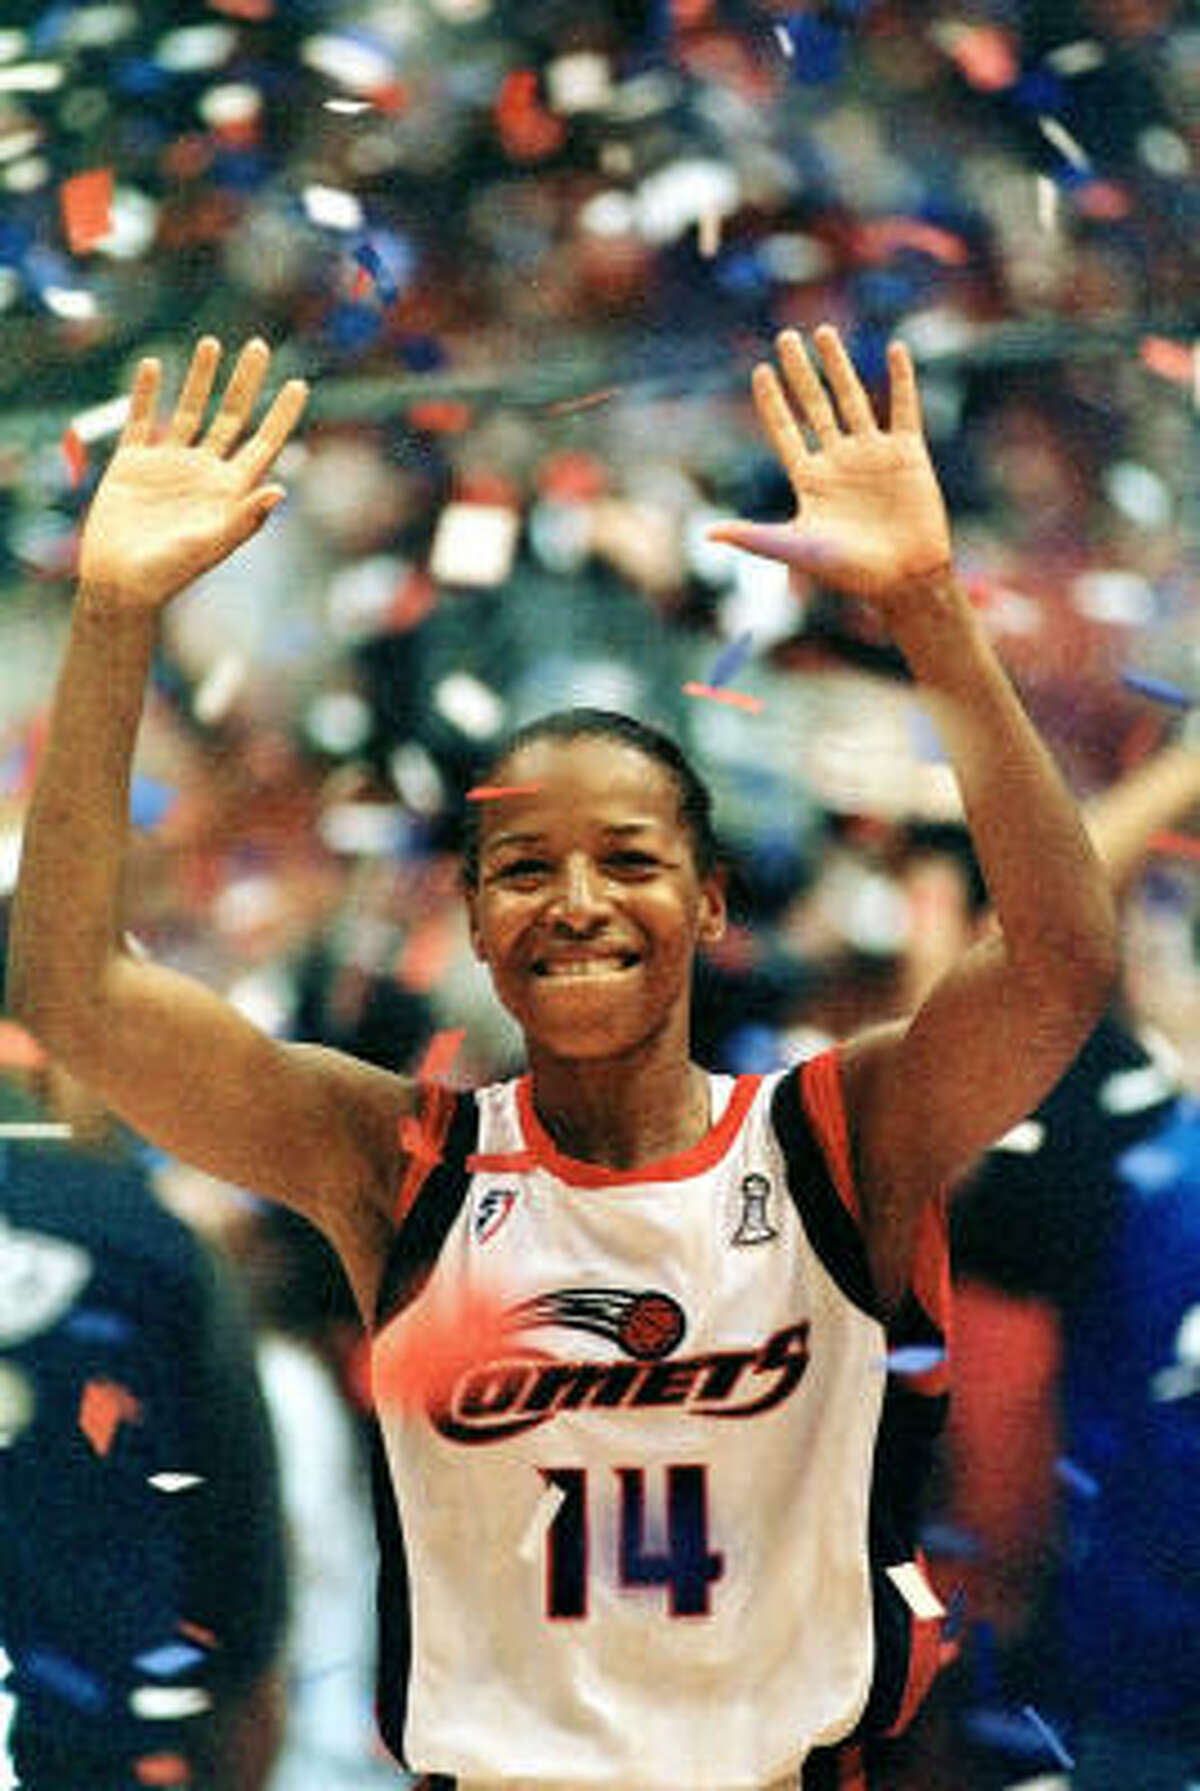 CYNTHIA COOPER, COMETS 1998 WNBA MVP Cooper led the Comets to their second straight championship and averaged 22.7 points and 4.4 assists per game.